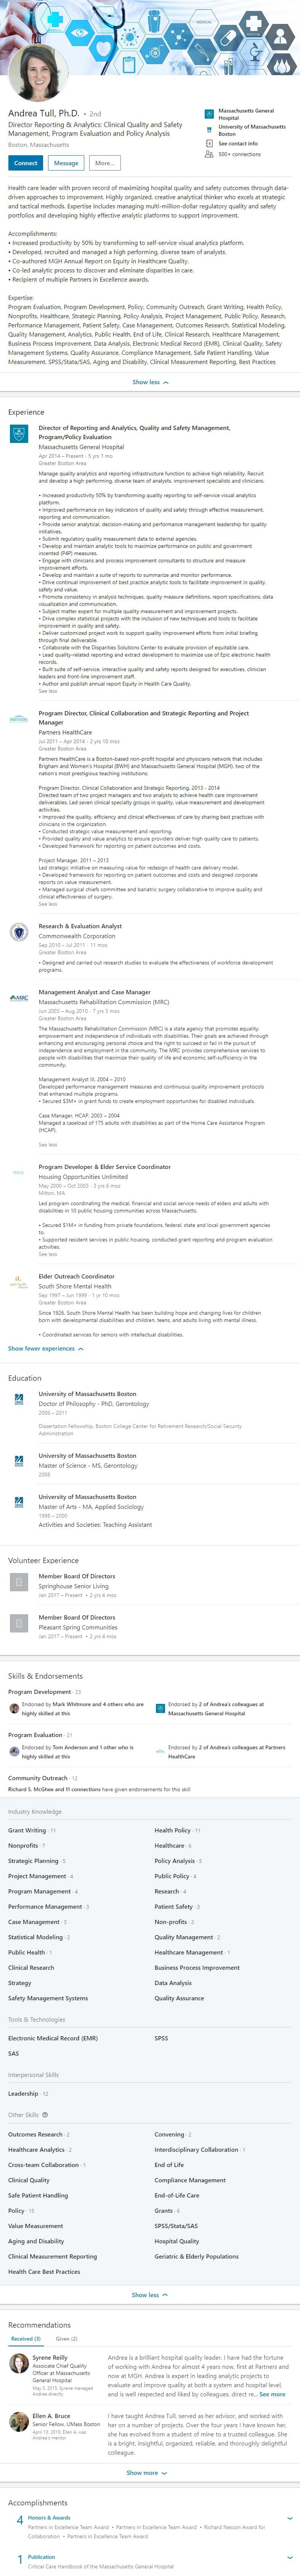 Linkedin profile example human resource consulting